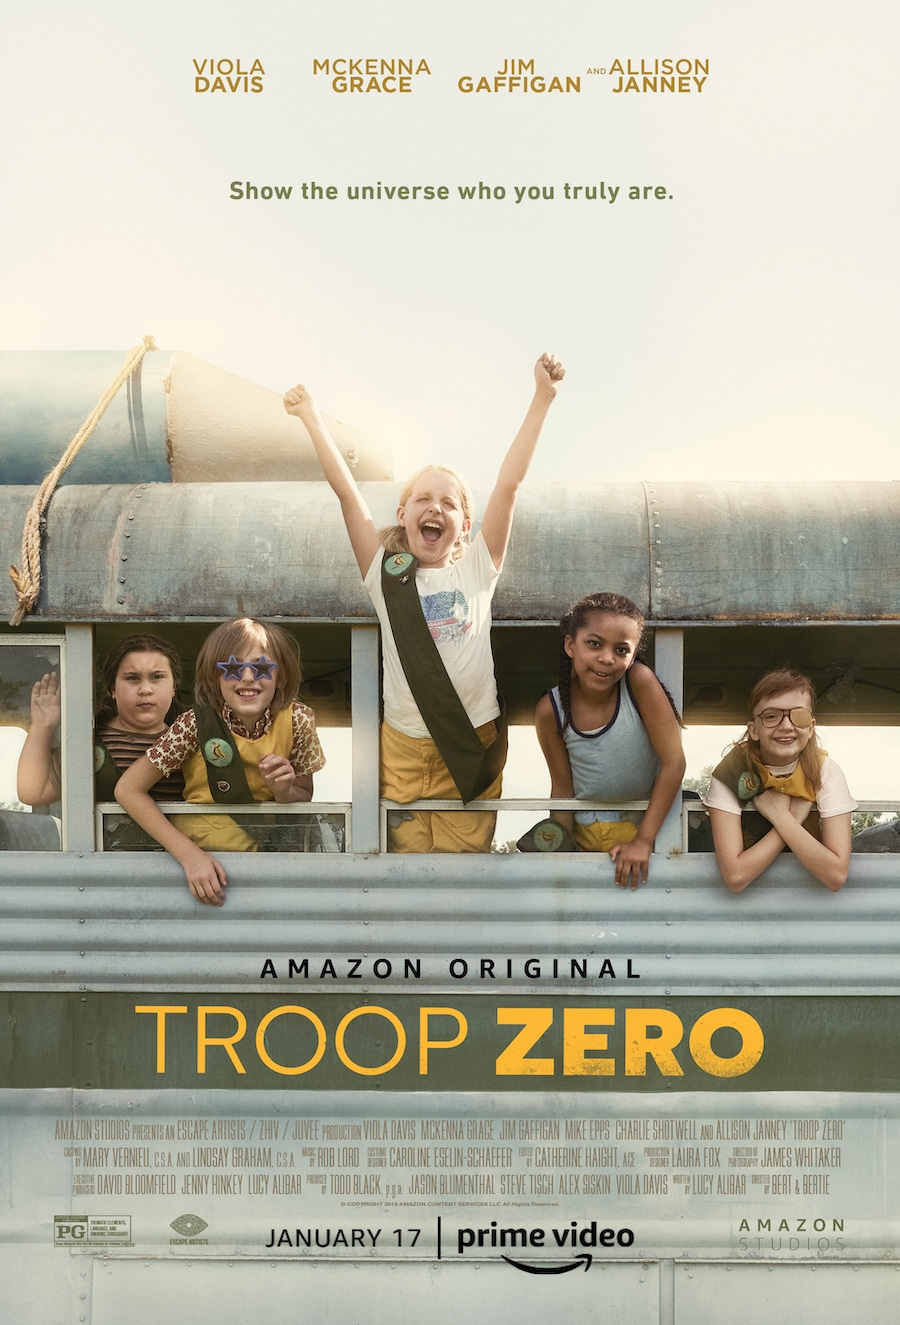 Troop Zero Movie Poster in Troop Zero parents guide